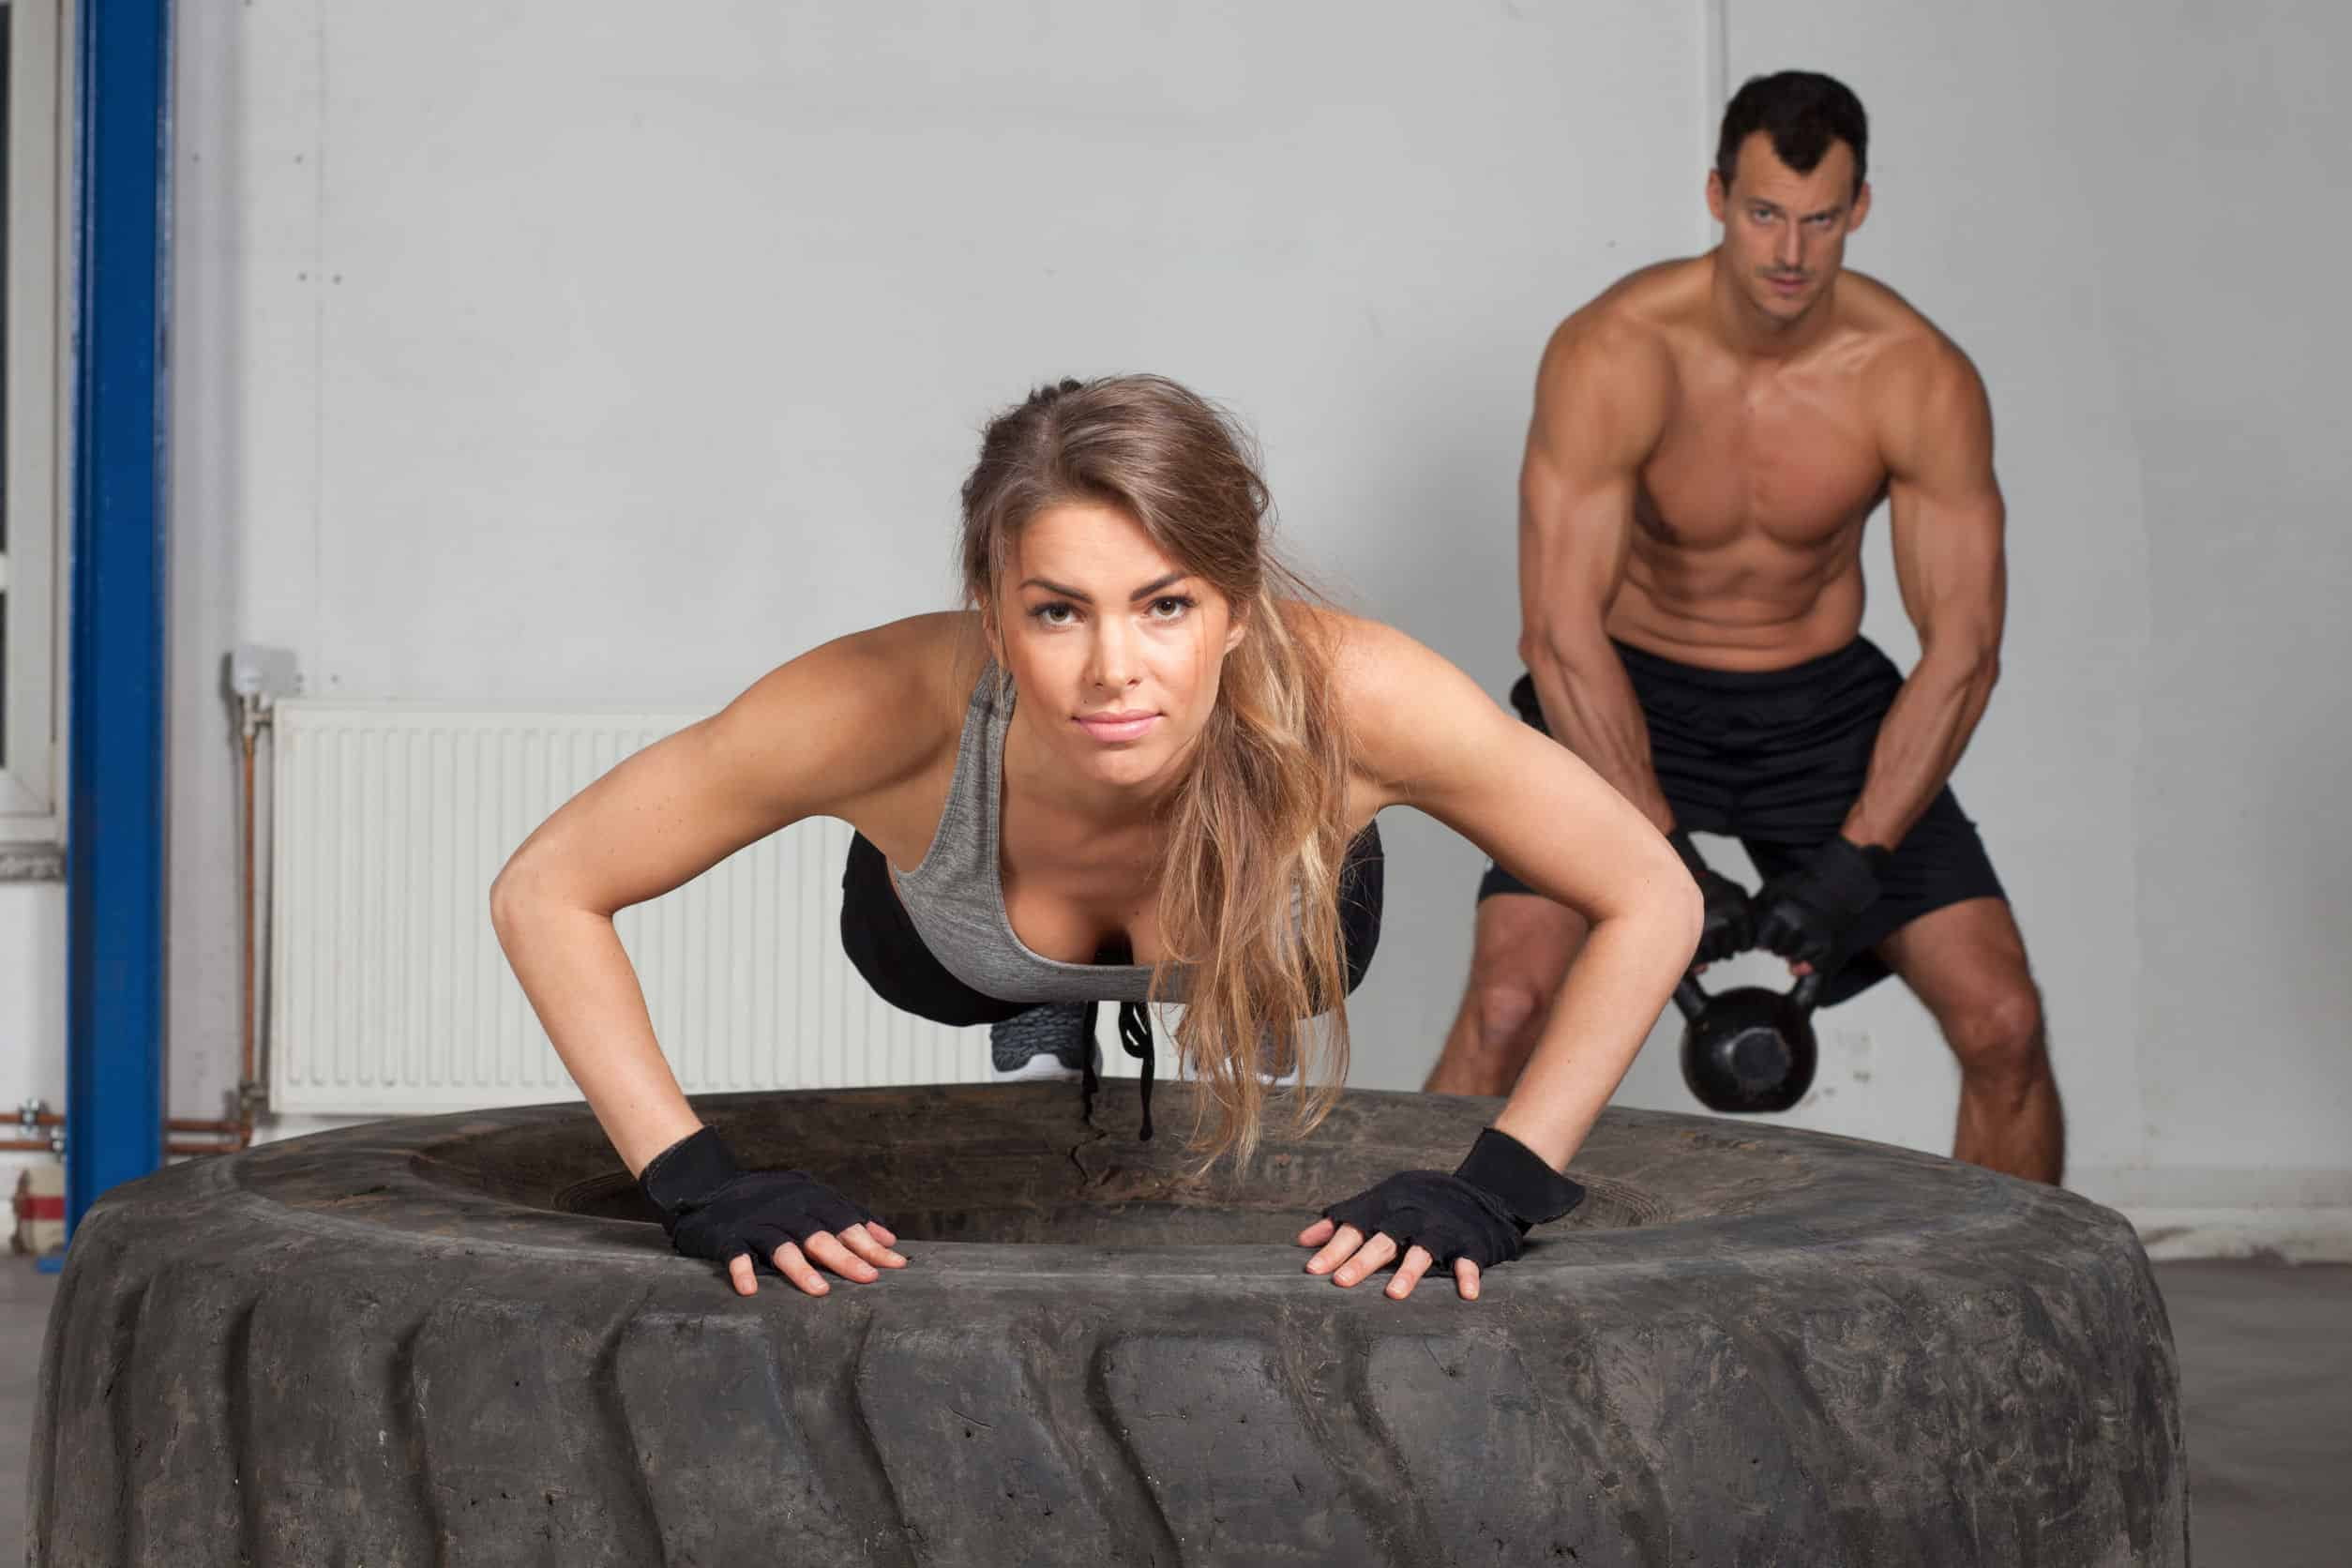 37462125 - push up on a tire crossfit training